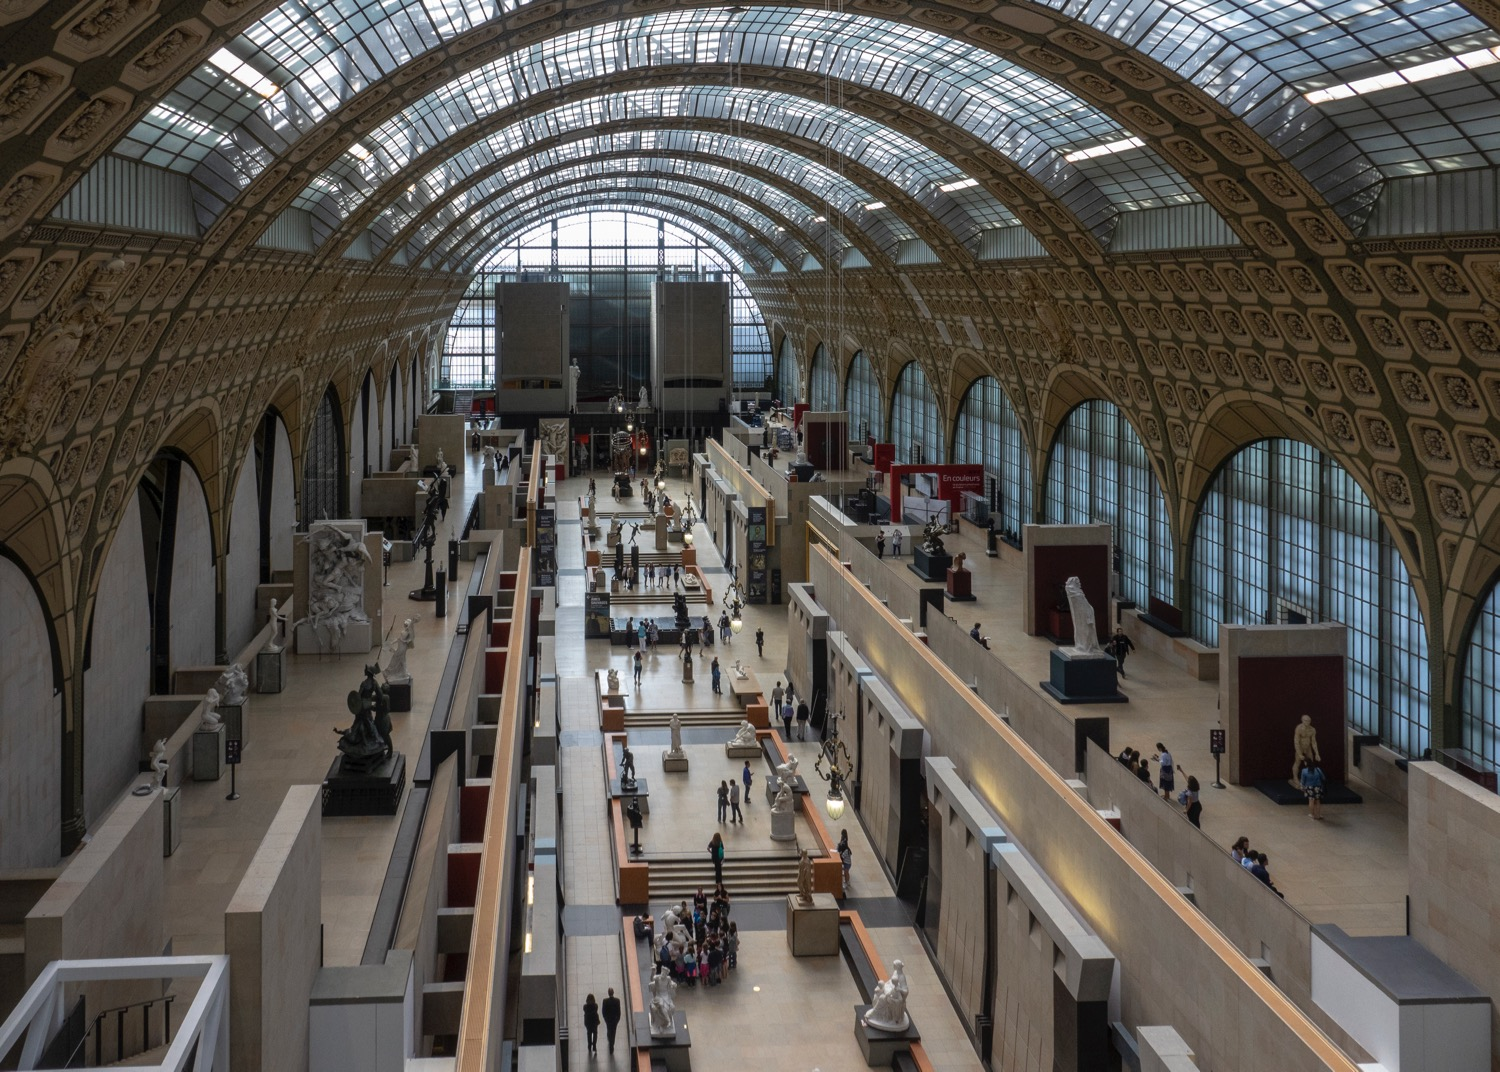 My favoruite art museum, the Musee D'Orsay